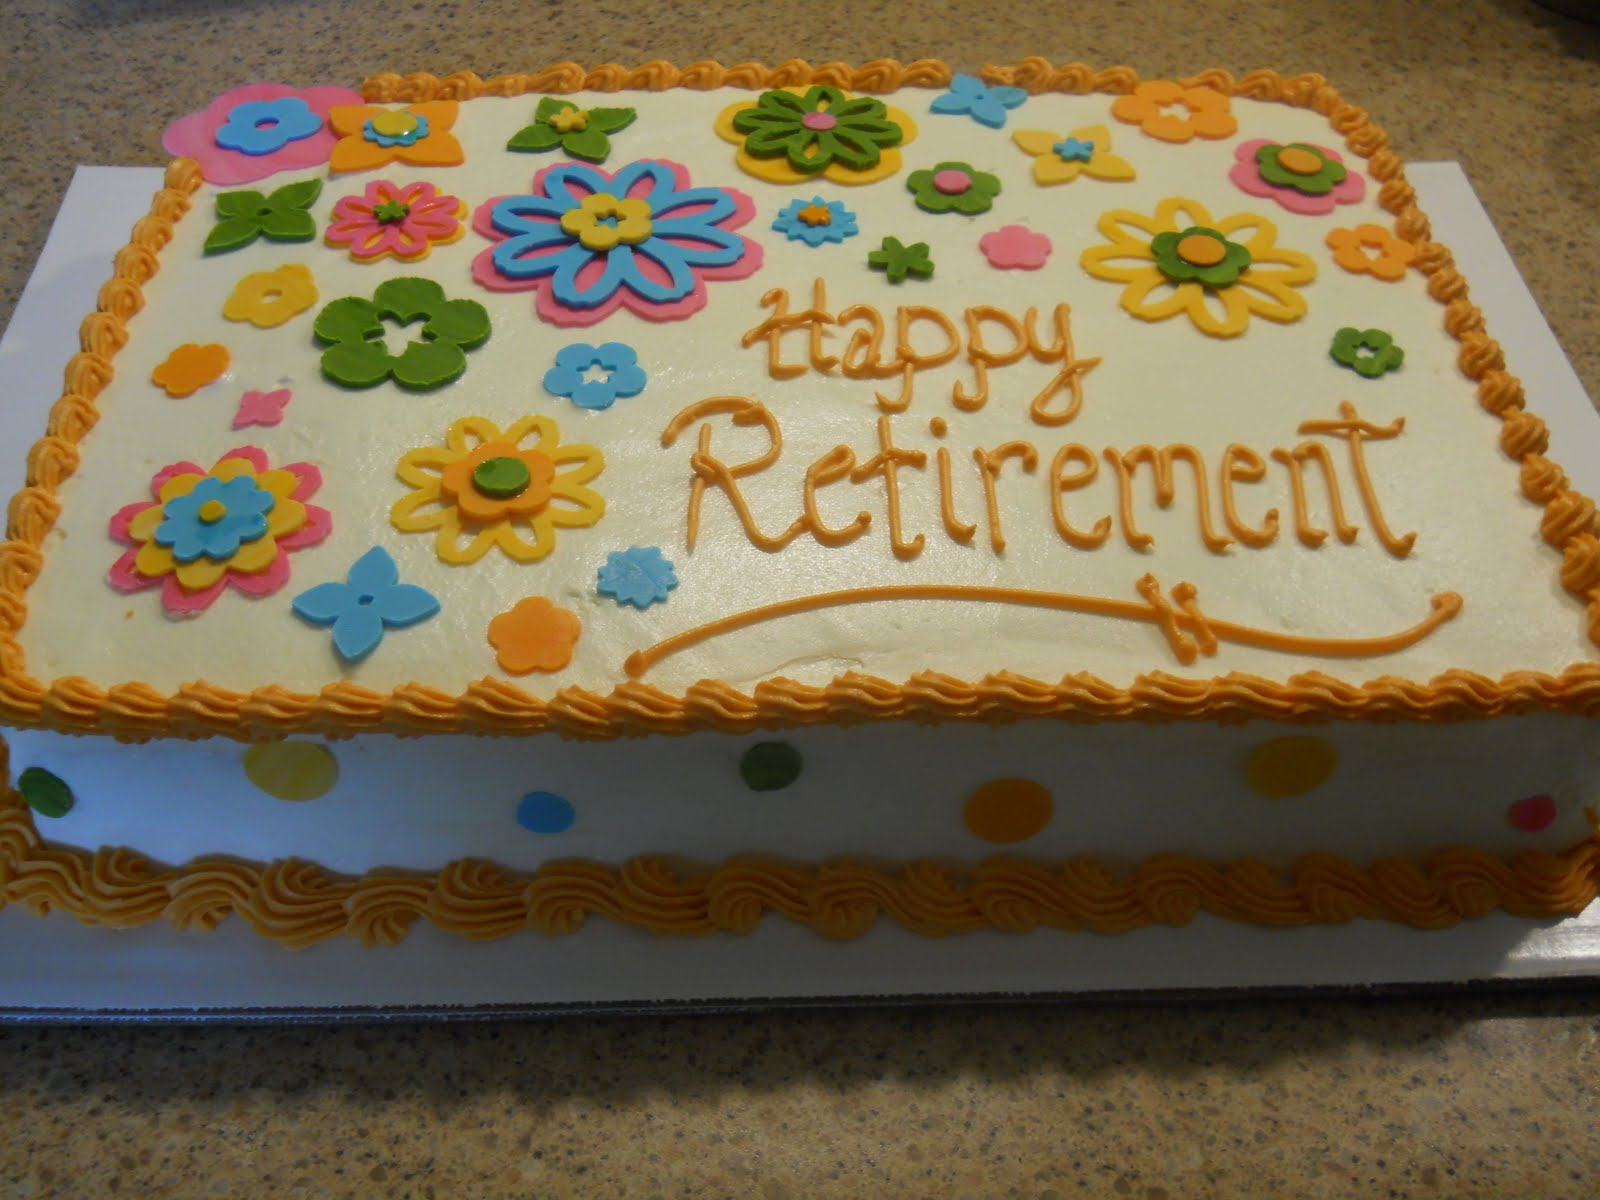 Le Mie Cose Favorites: Retirement Cake - 2nd time using ...